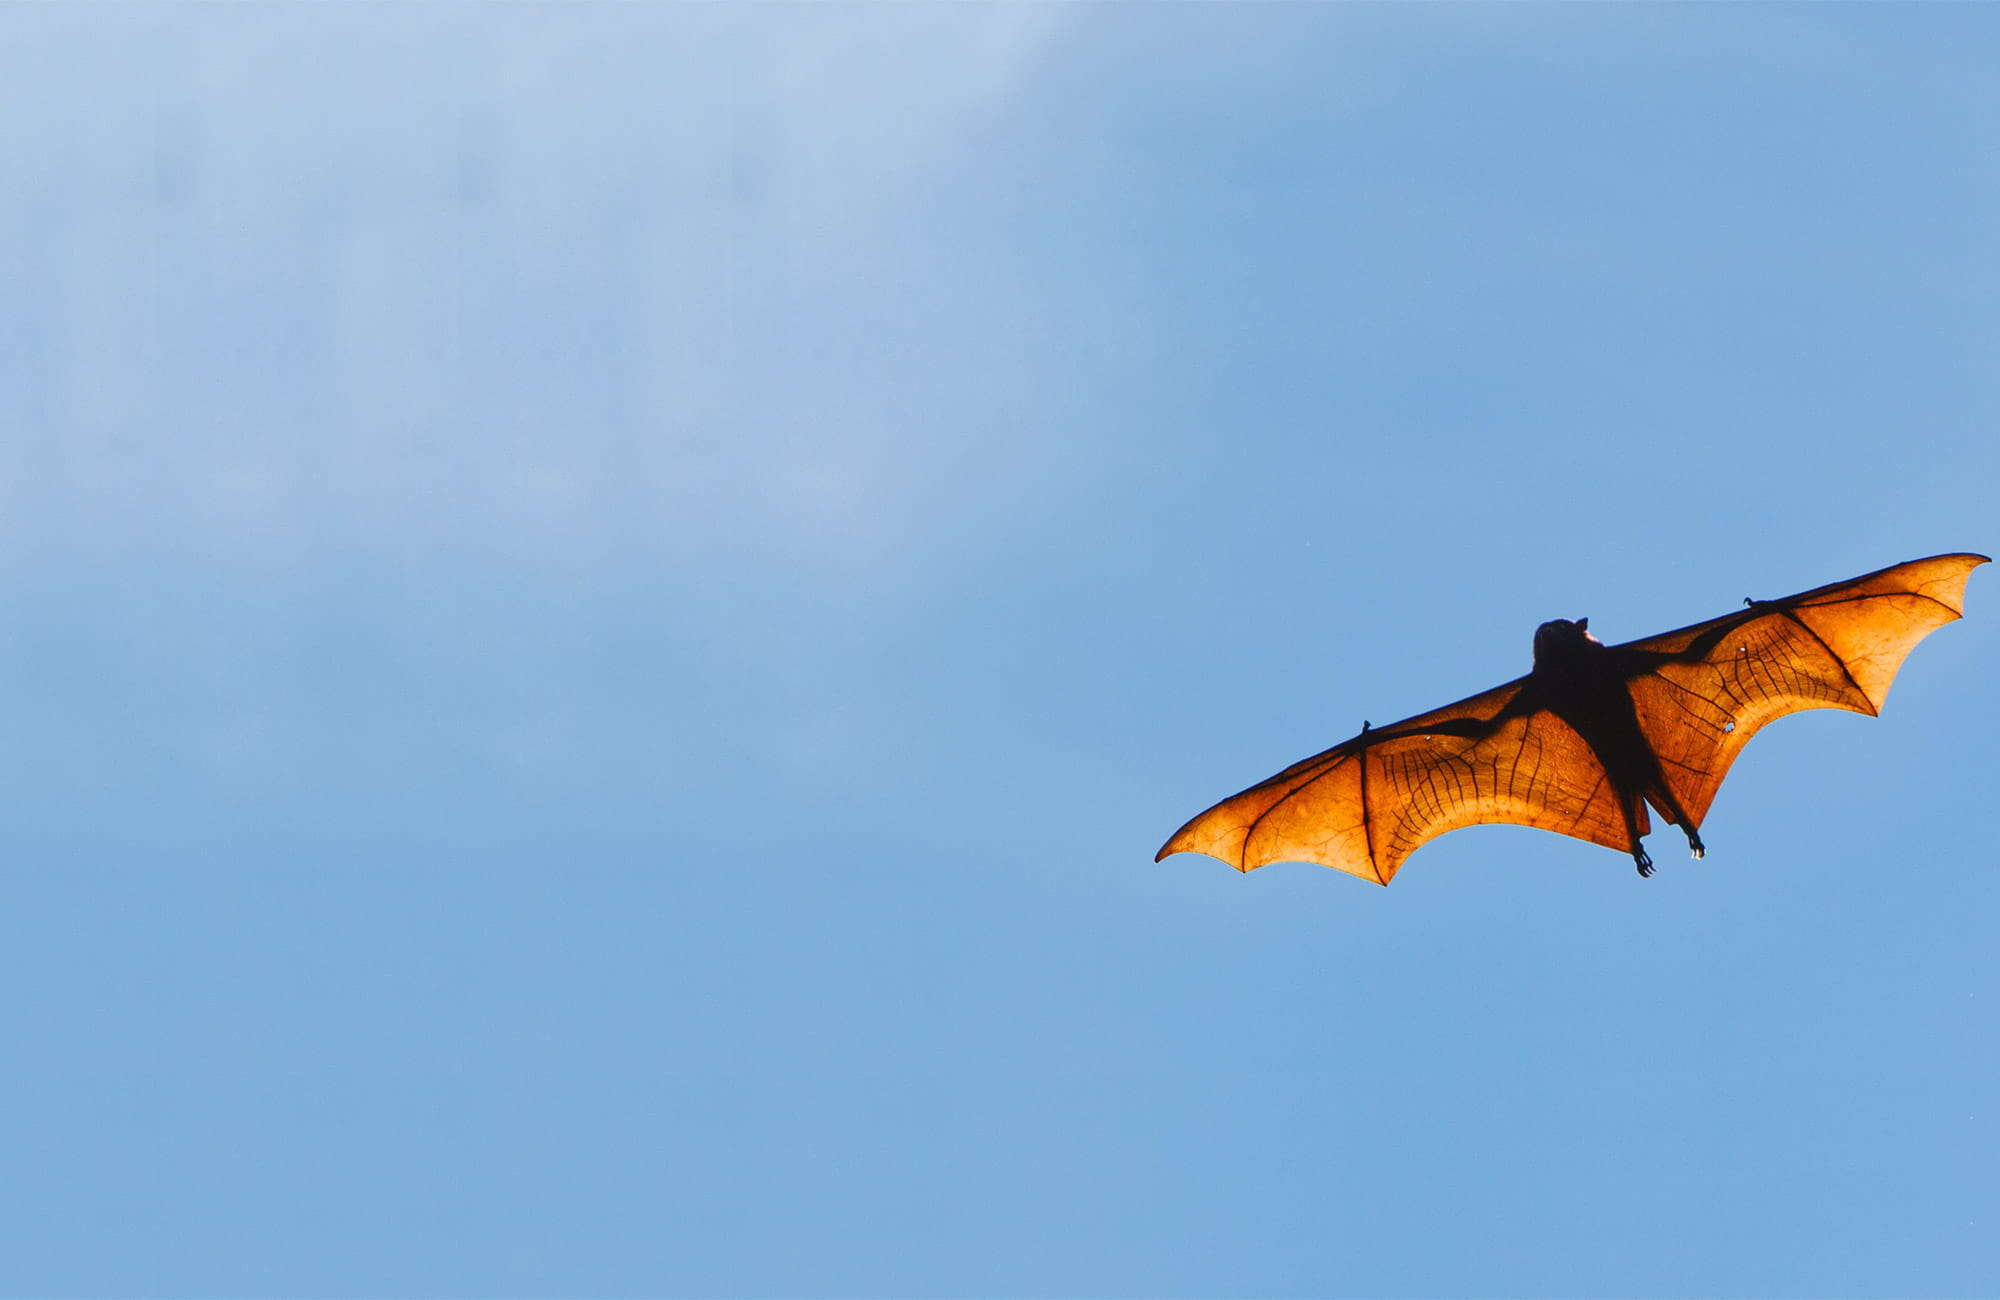 A bat. Photo: Rob Cleary